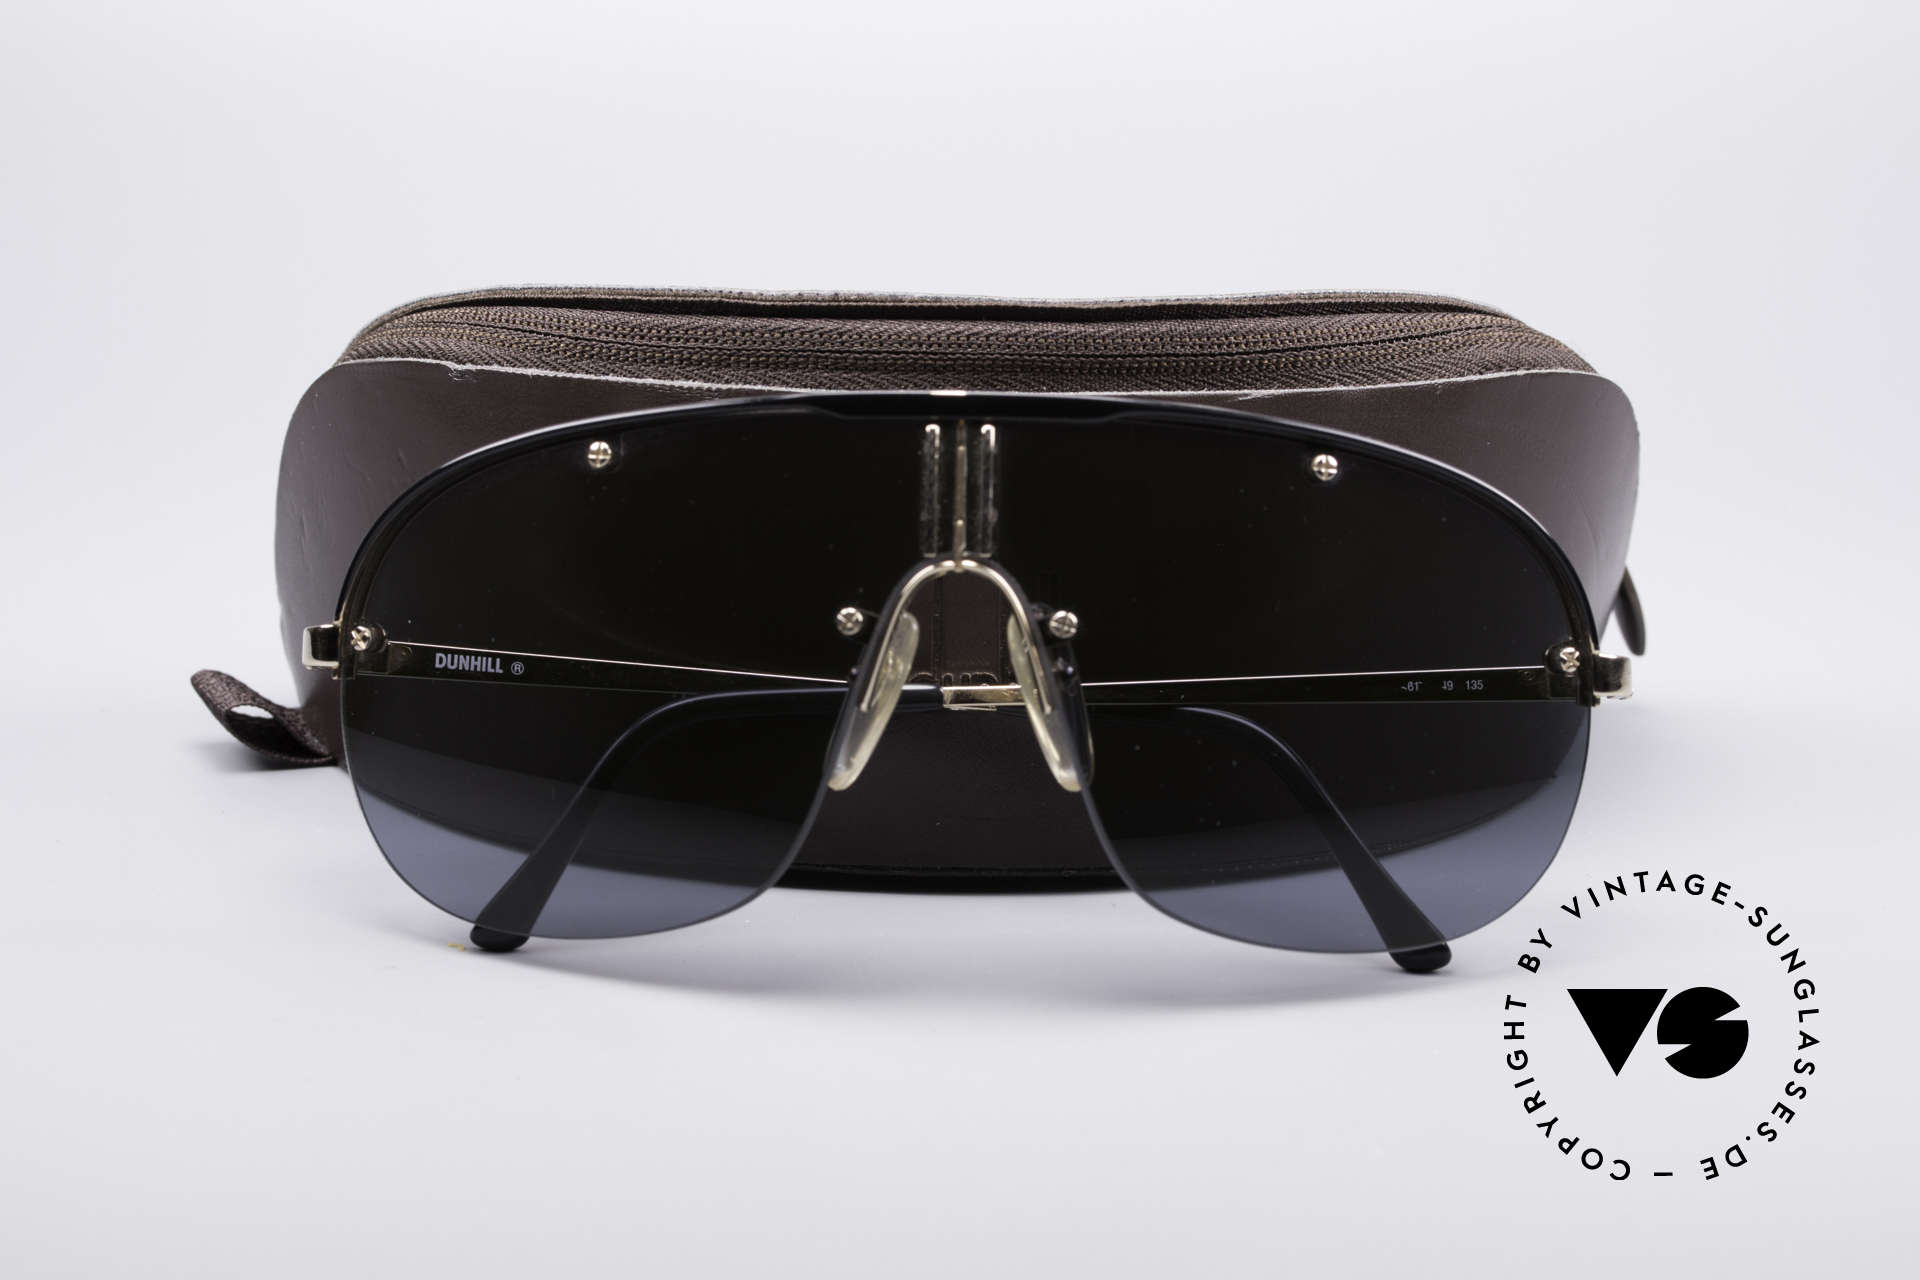 Dunhill 6102 90's Men's Shades, unworn condition, NOS (real rarity and collector's item), Made for Men